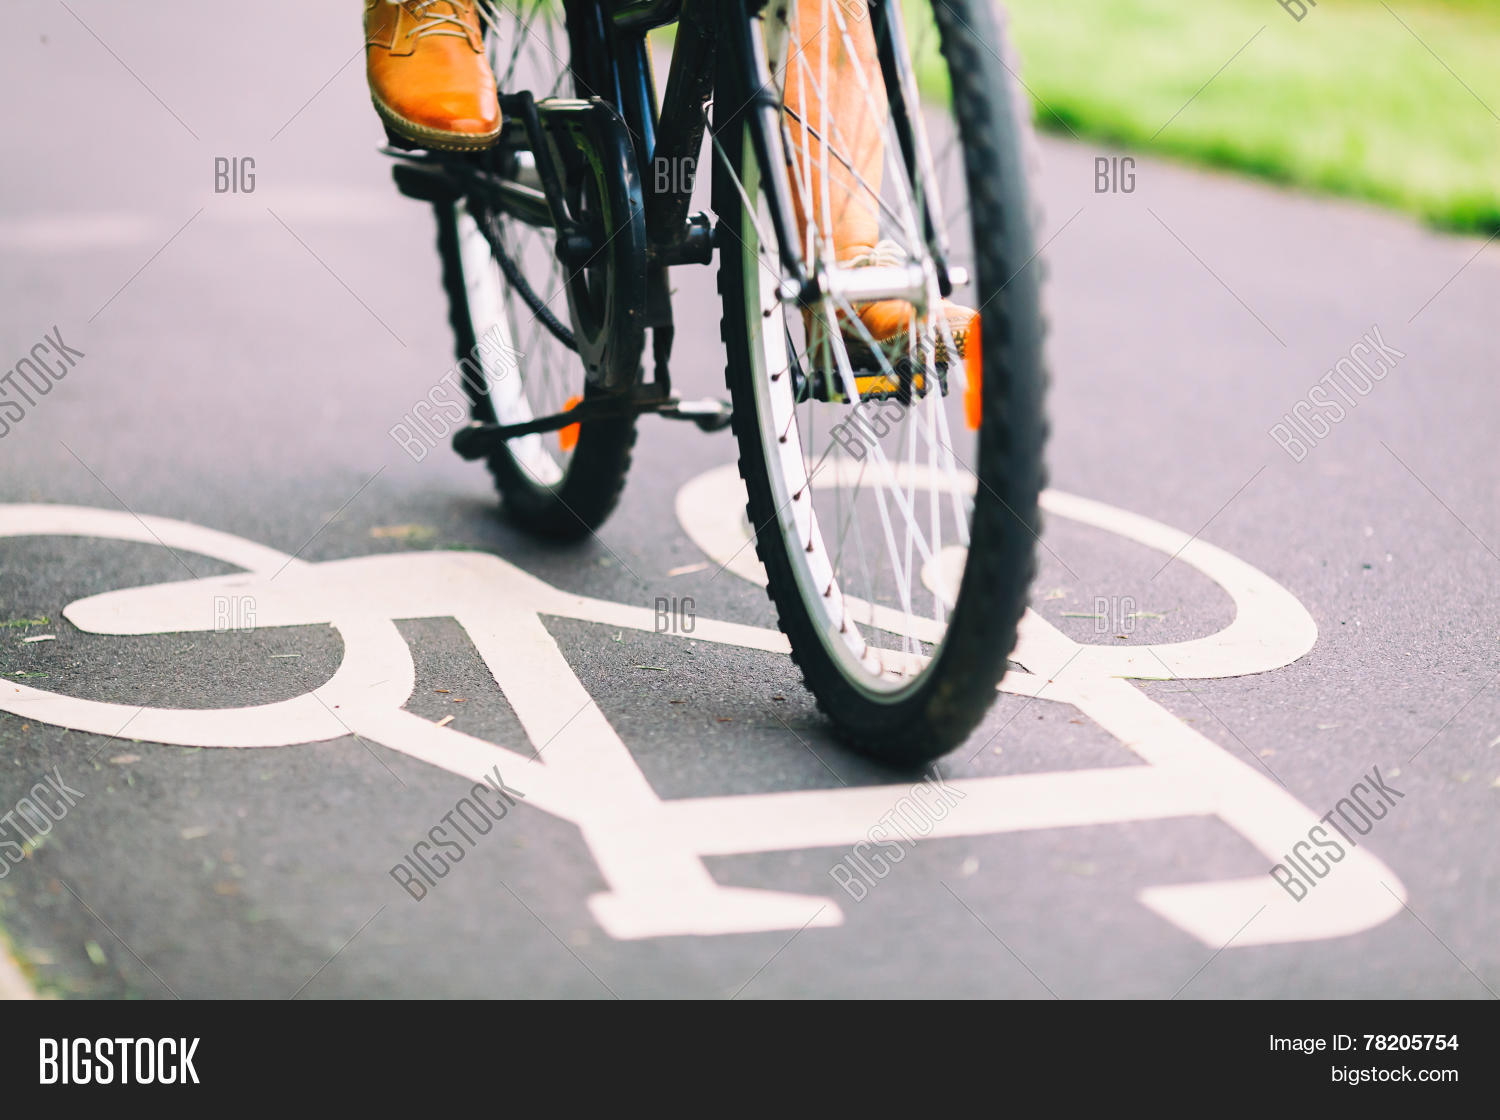 alternative,asphalt,background,background vintage,bicycle,bike,bikepath,bike riding,blur,blurred lights,bokeh,busy,city,city background,city street,color background,colorful,colorful background,colorful backgrounds,colors,commute,commuter,commuting,concept,cycling,day,ecological,ecology,exercise,fit,fitness,fitness man,healthy,healthy man,healthy people,how it works,inspiration,inspirational background,light background,lights,lights background,man,marking,old,old man,old people,paint,path,people,people working,person,retro,retro man,retro sign,ride,road sign,road signs,sign,sport,sports background,street,street light,street signs,sun,symbol,town,transport,urban,urban city,urban street,vintage,vintage background,vintage backgrounds,vintage bicycle,vintage man,vintage people,vintage sign,working out,working people,work out